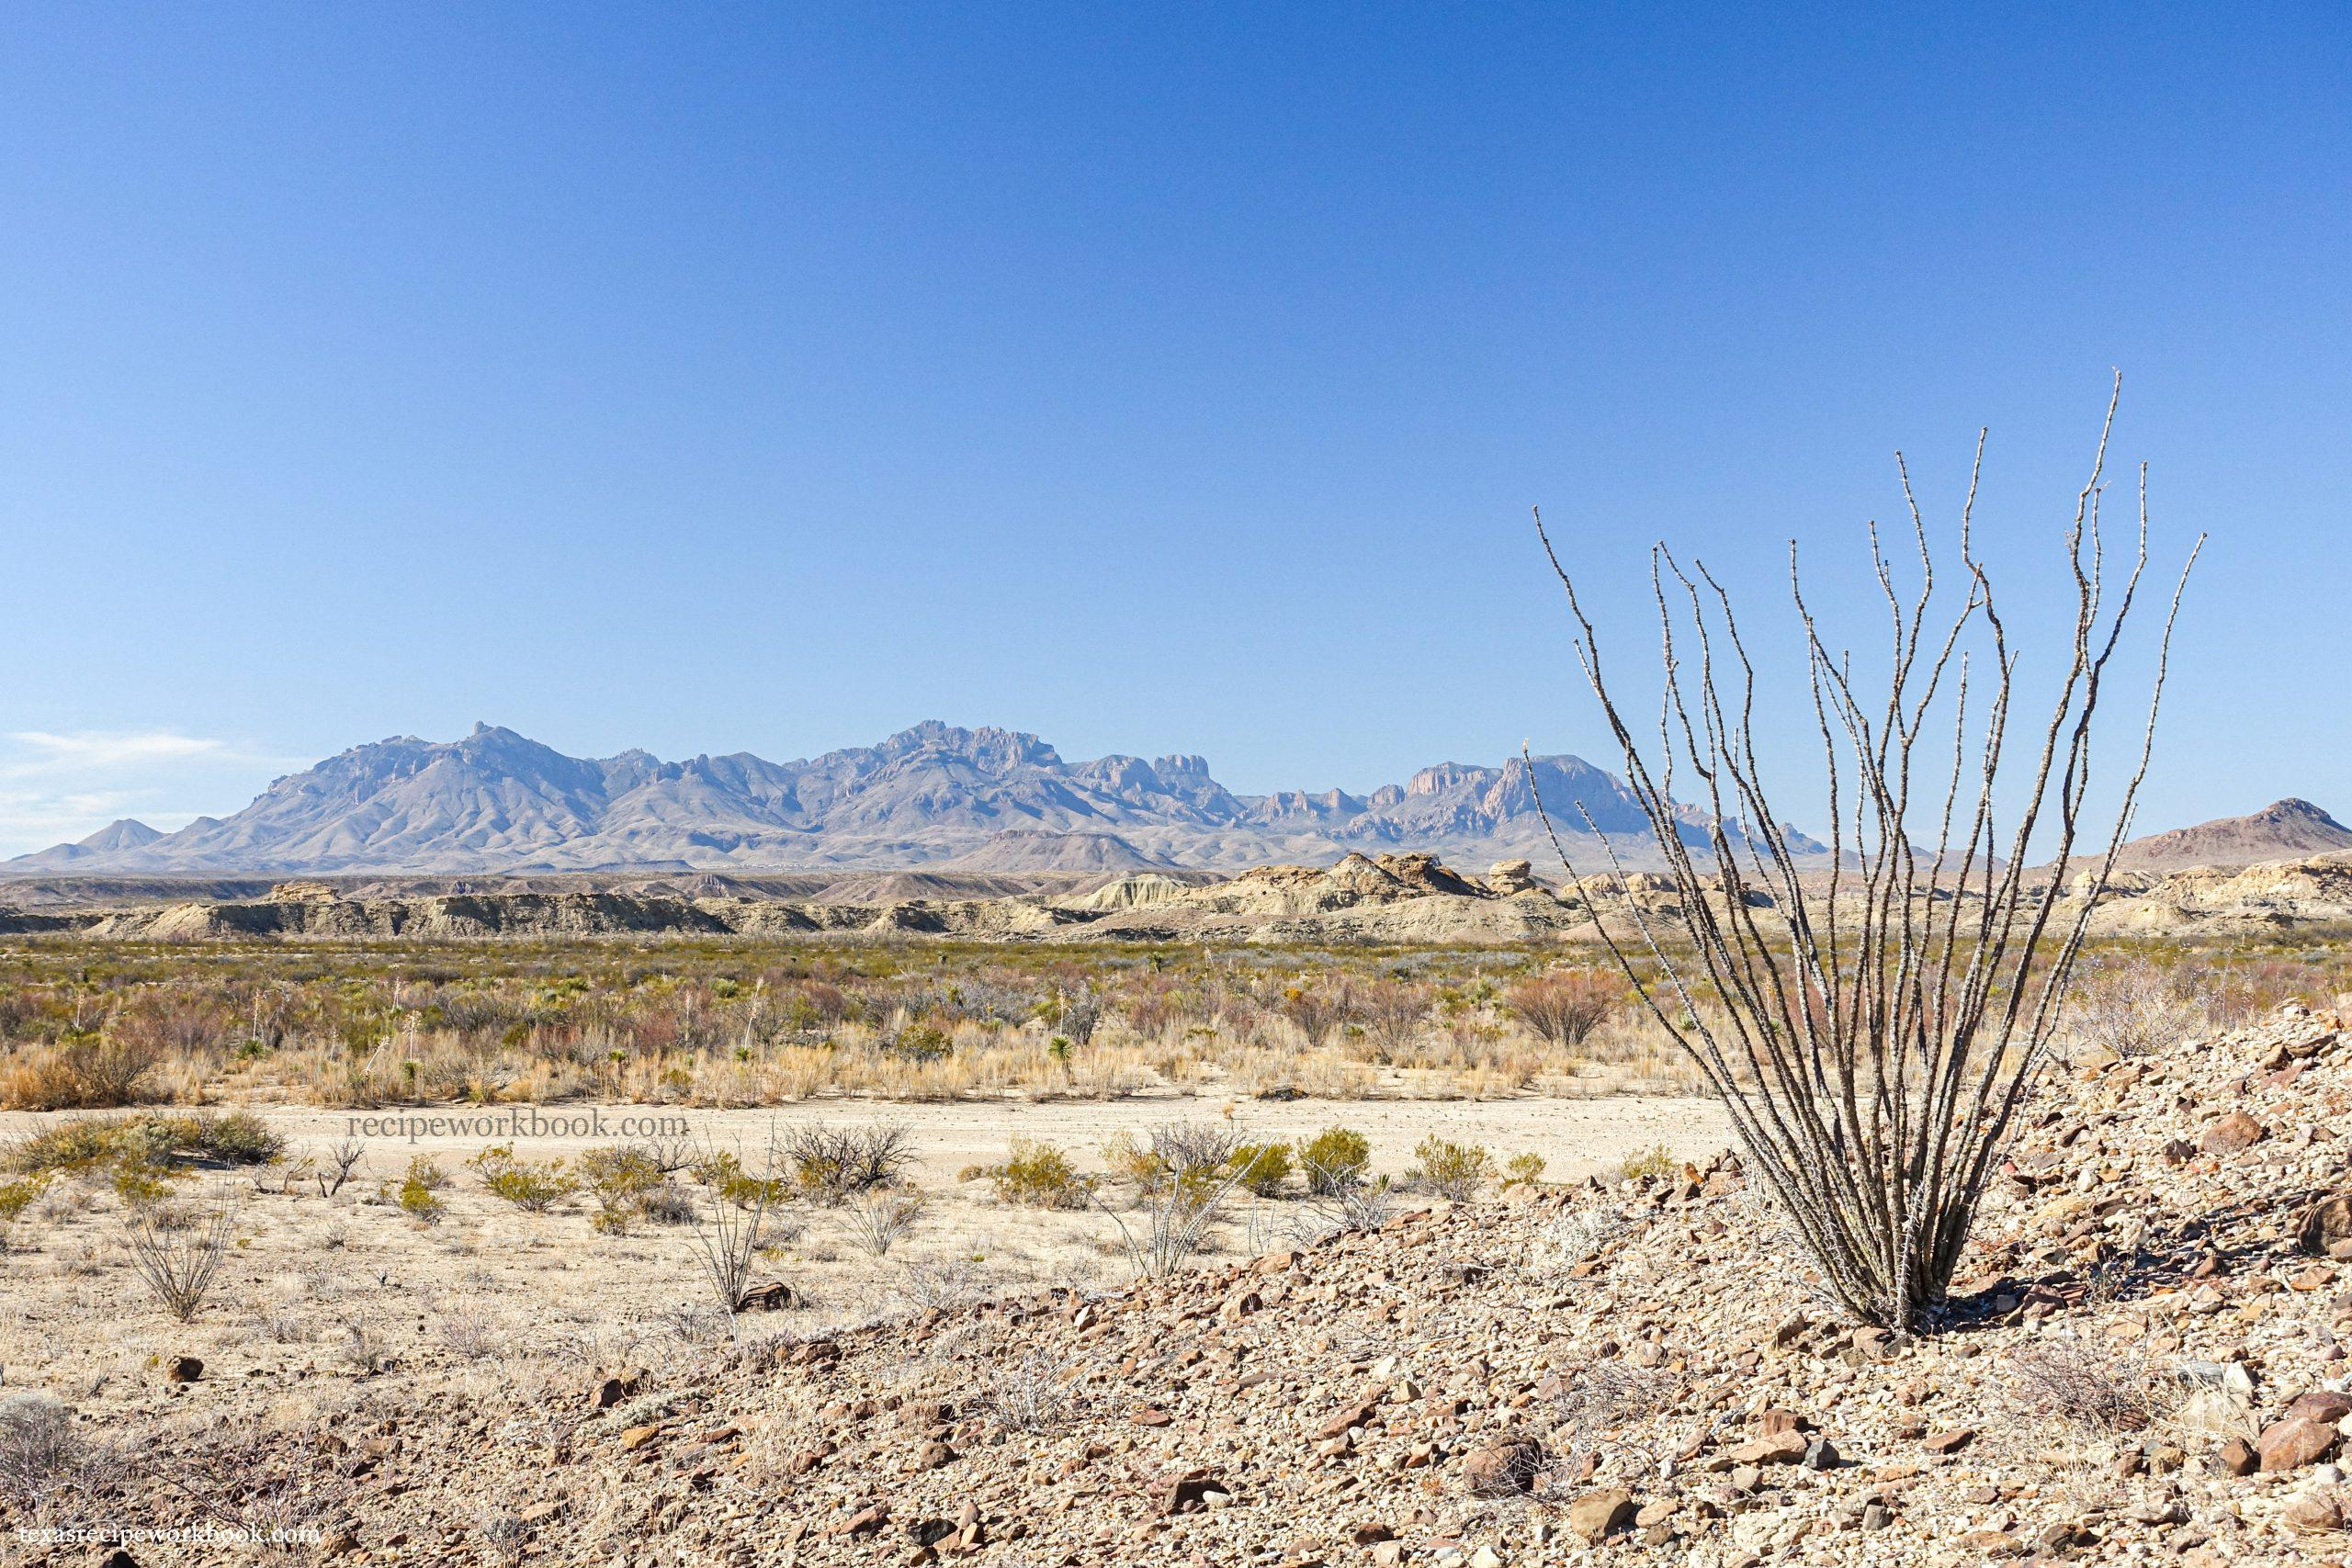 Ocotillo from Nine Point Draw, looking up at the Chisos Mountains in Big Bend.